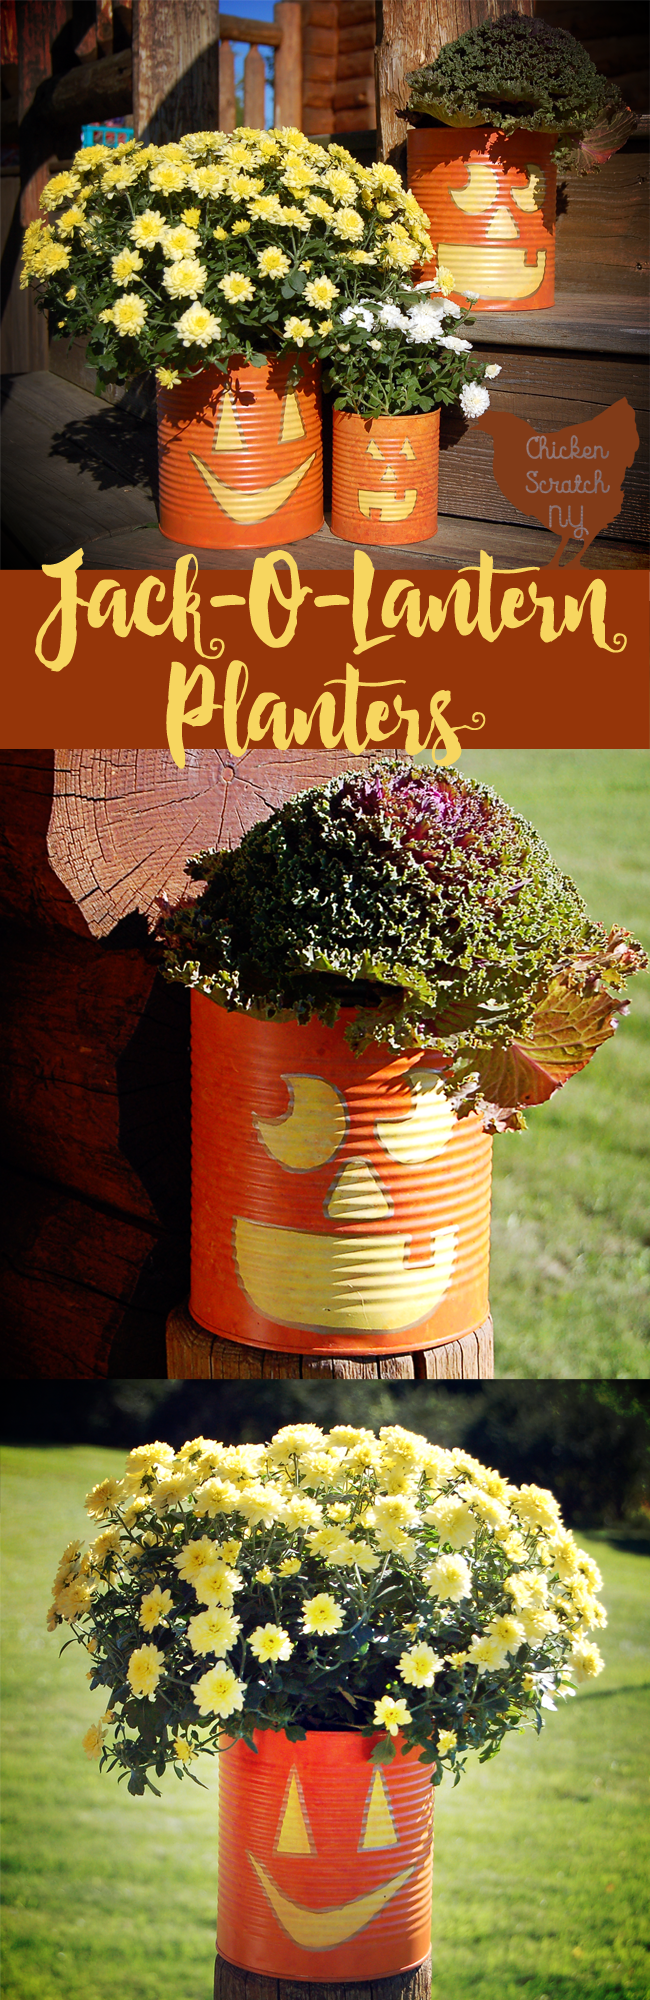 Whip up a set of Jack-O-Lantern Planters from tin cans this fall. Fill them with seasonal flowers for a fun pop of color on your front porch.